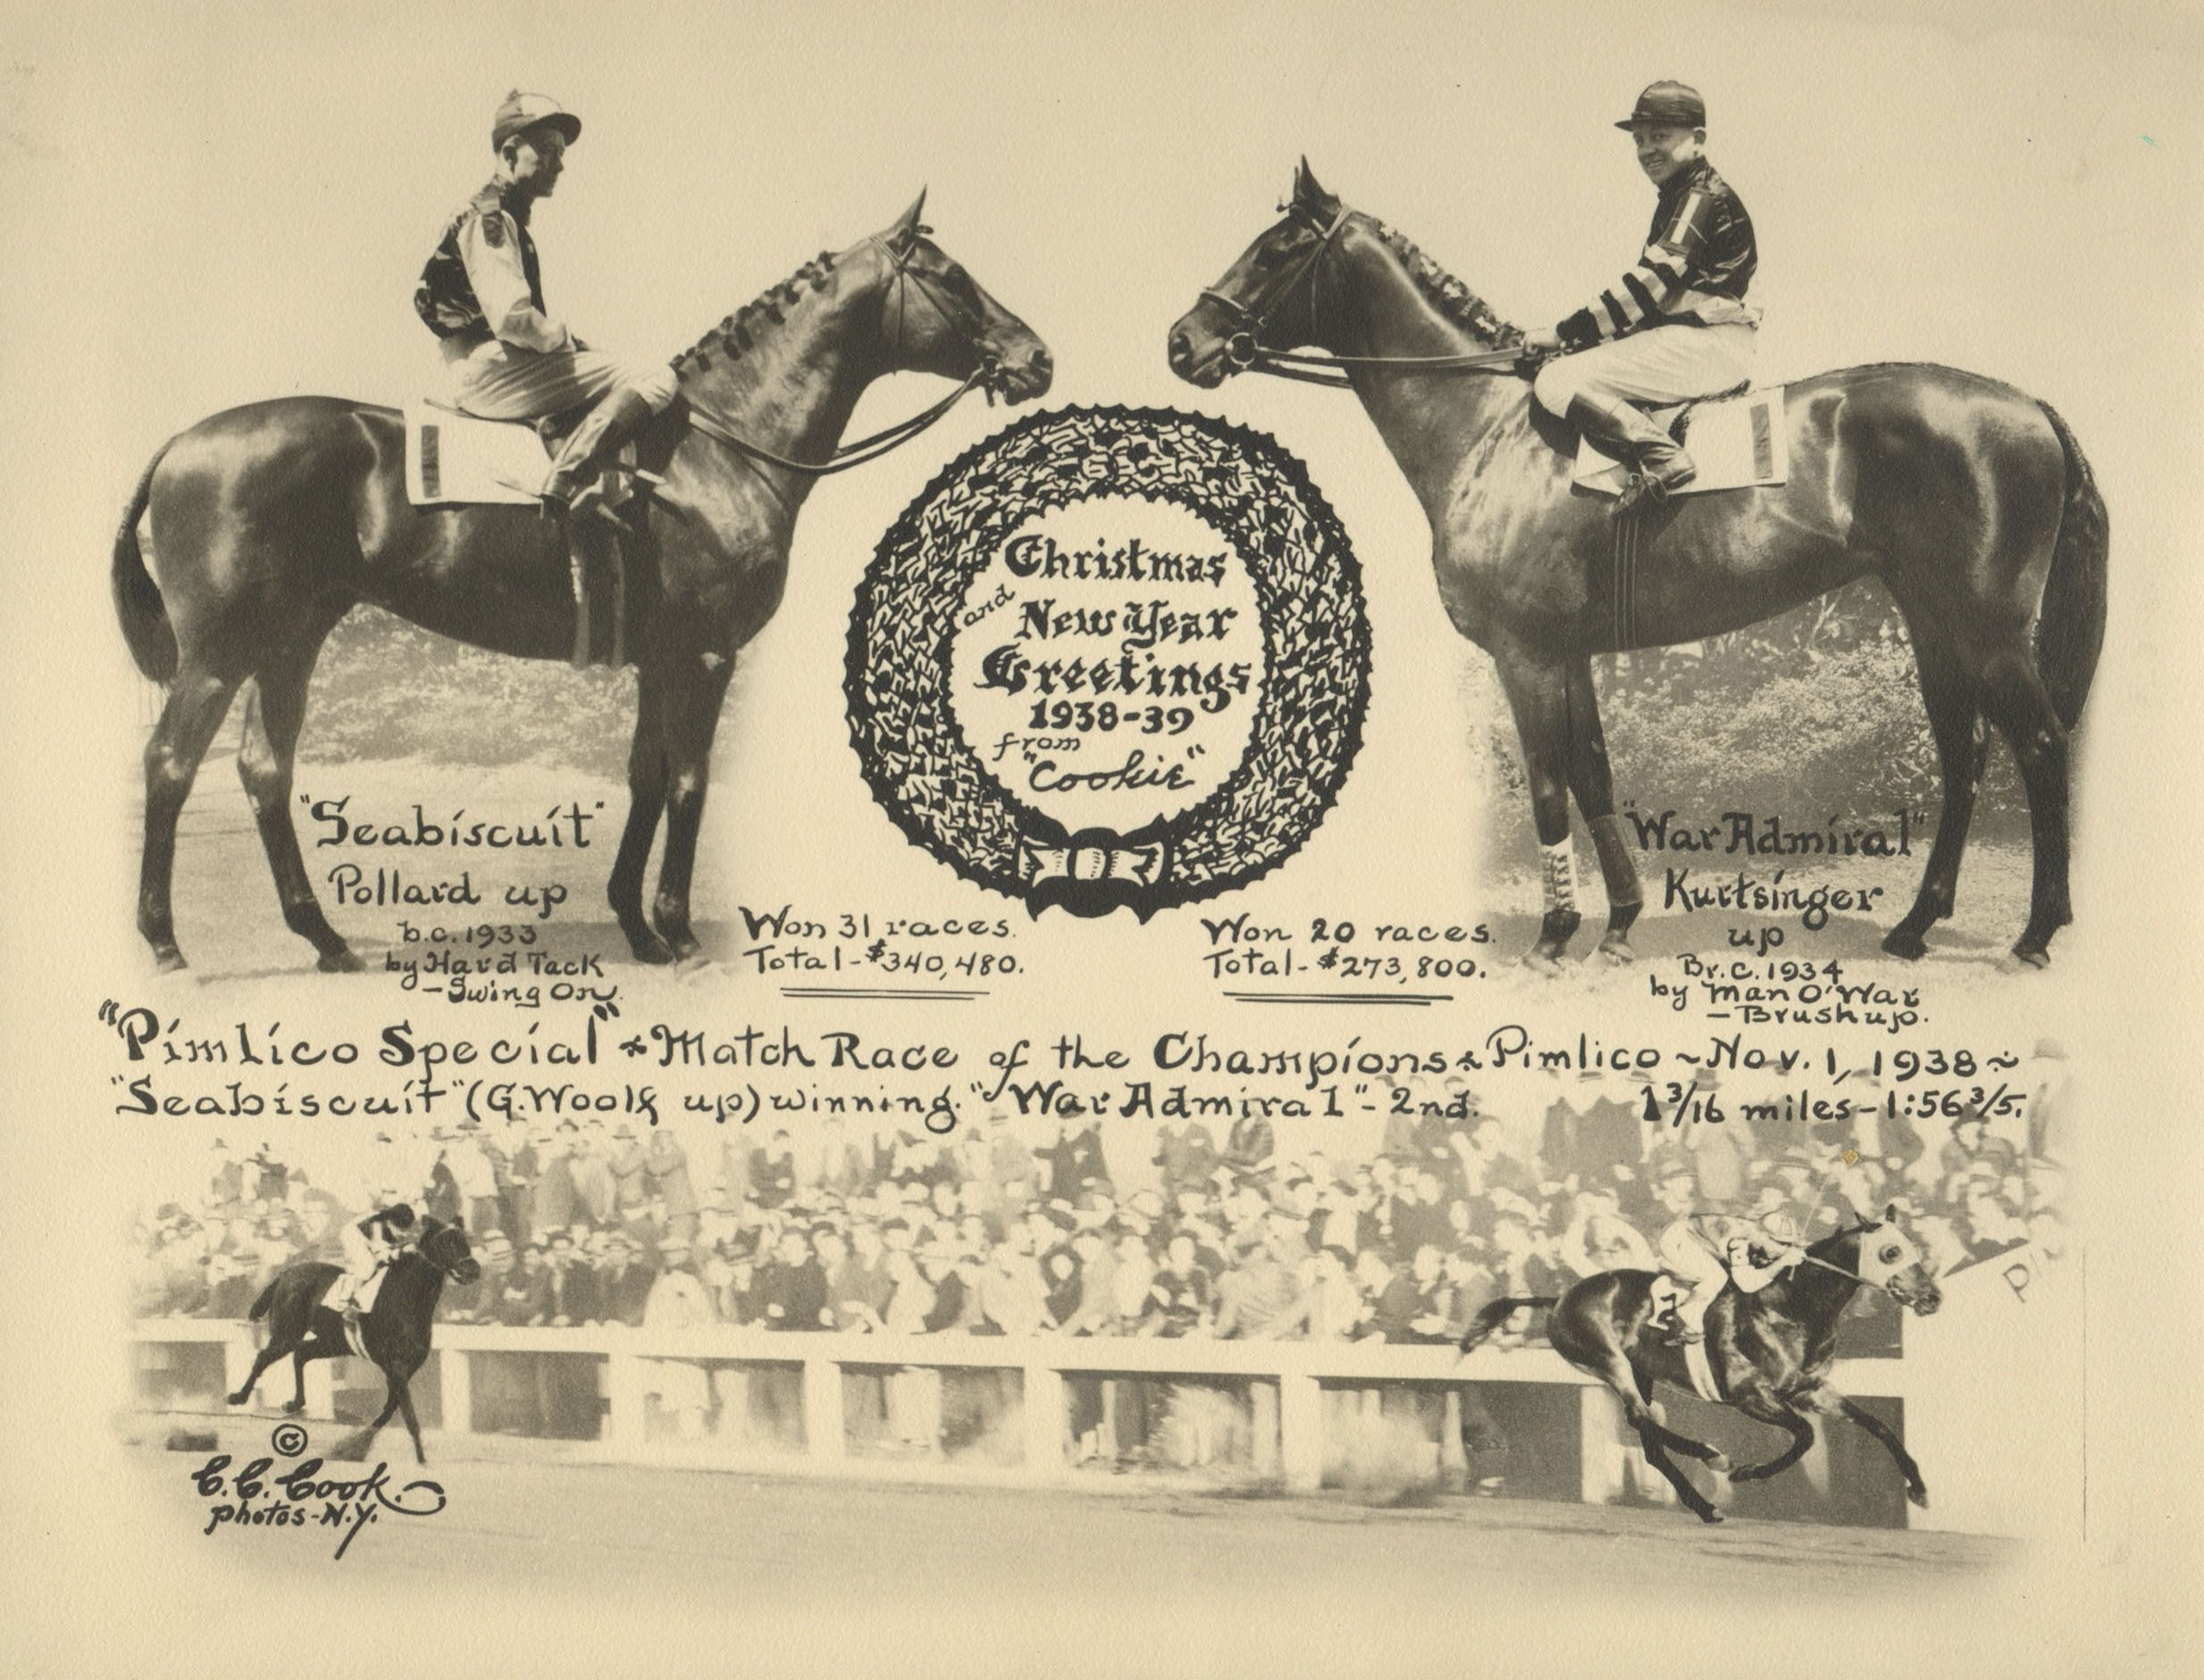 Seabiscuit vs. War Admiral, 1938 Pimlico Special, from a C. C. Cook Christmas card (C. C. Cook)